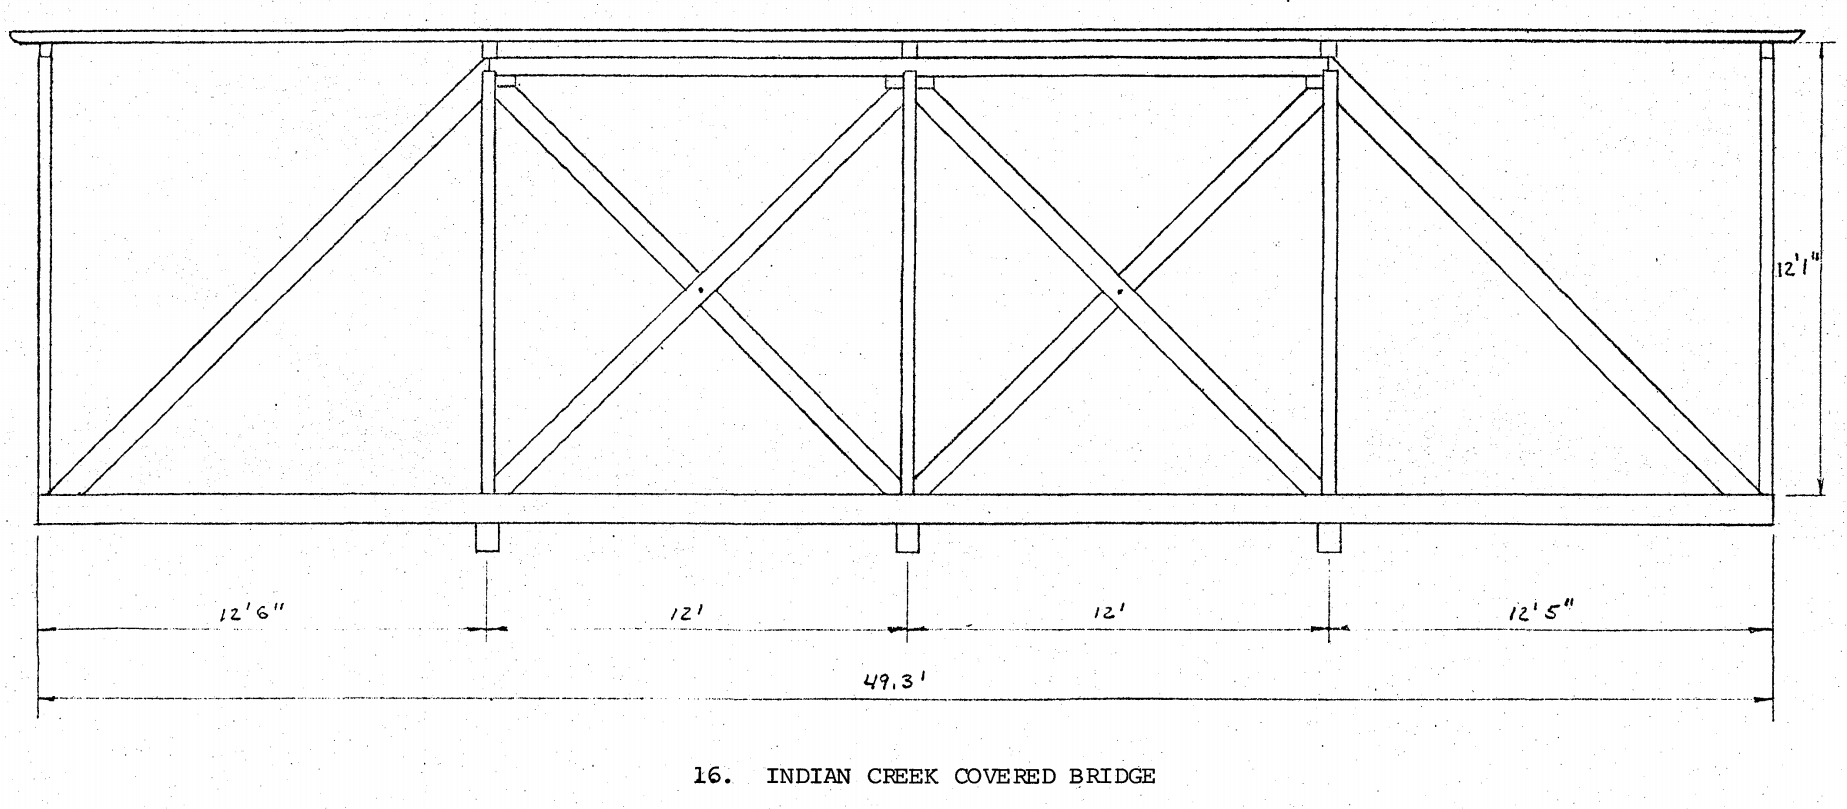 Architectural sketch of the Long trusses used for the bridge